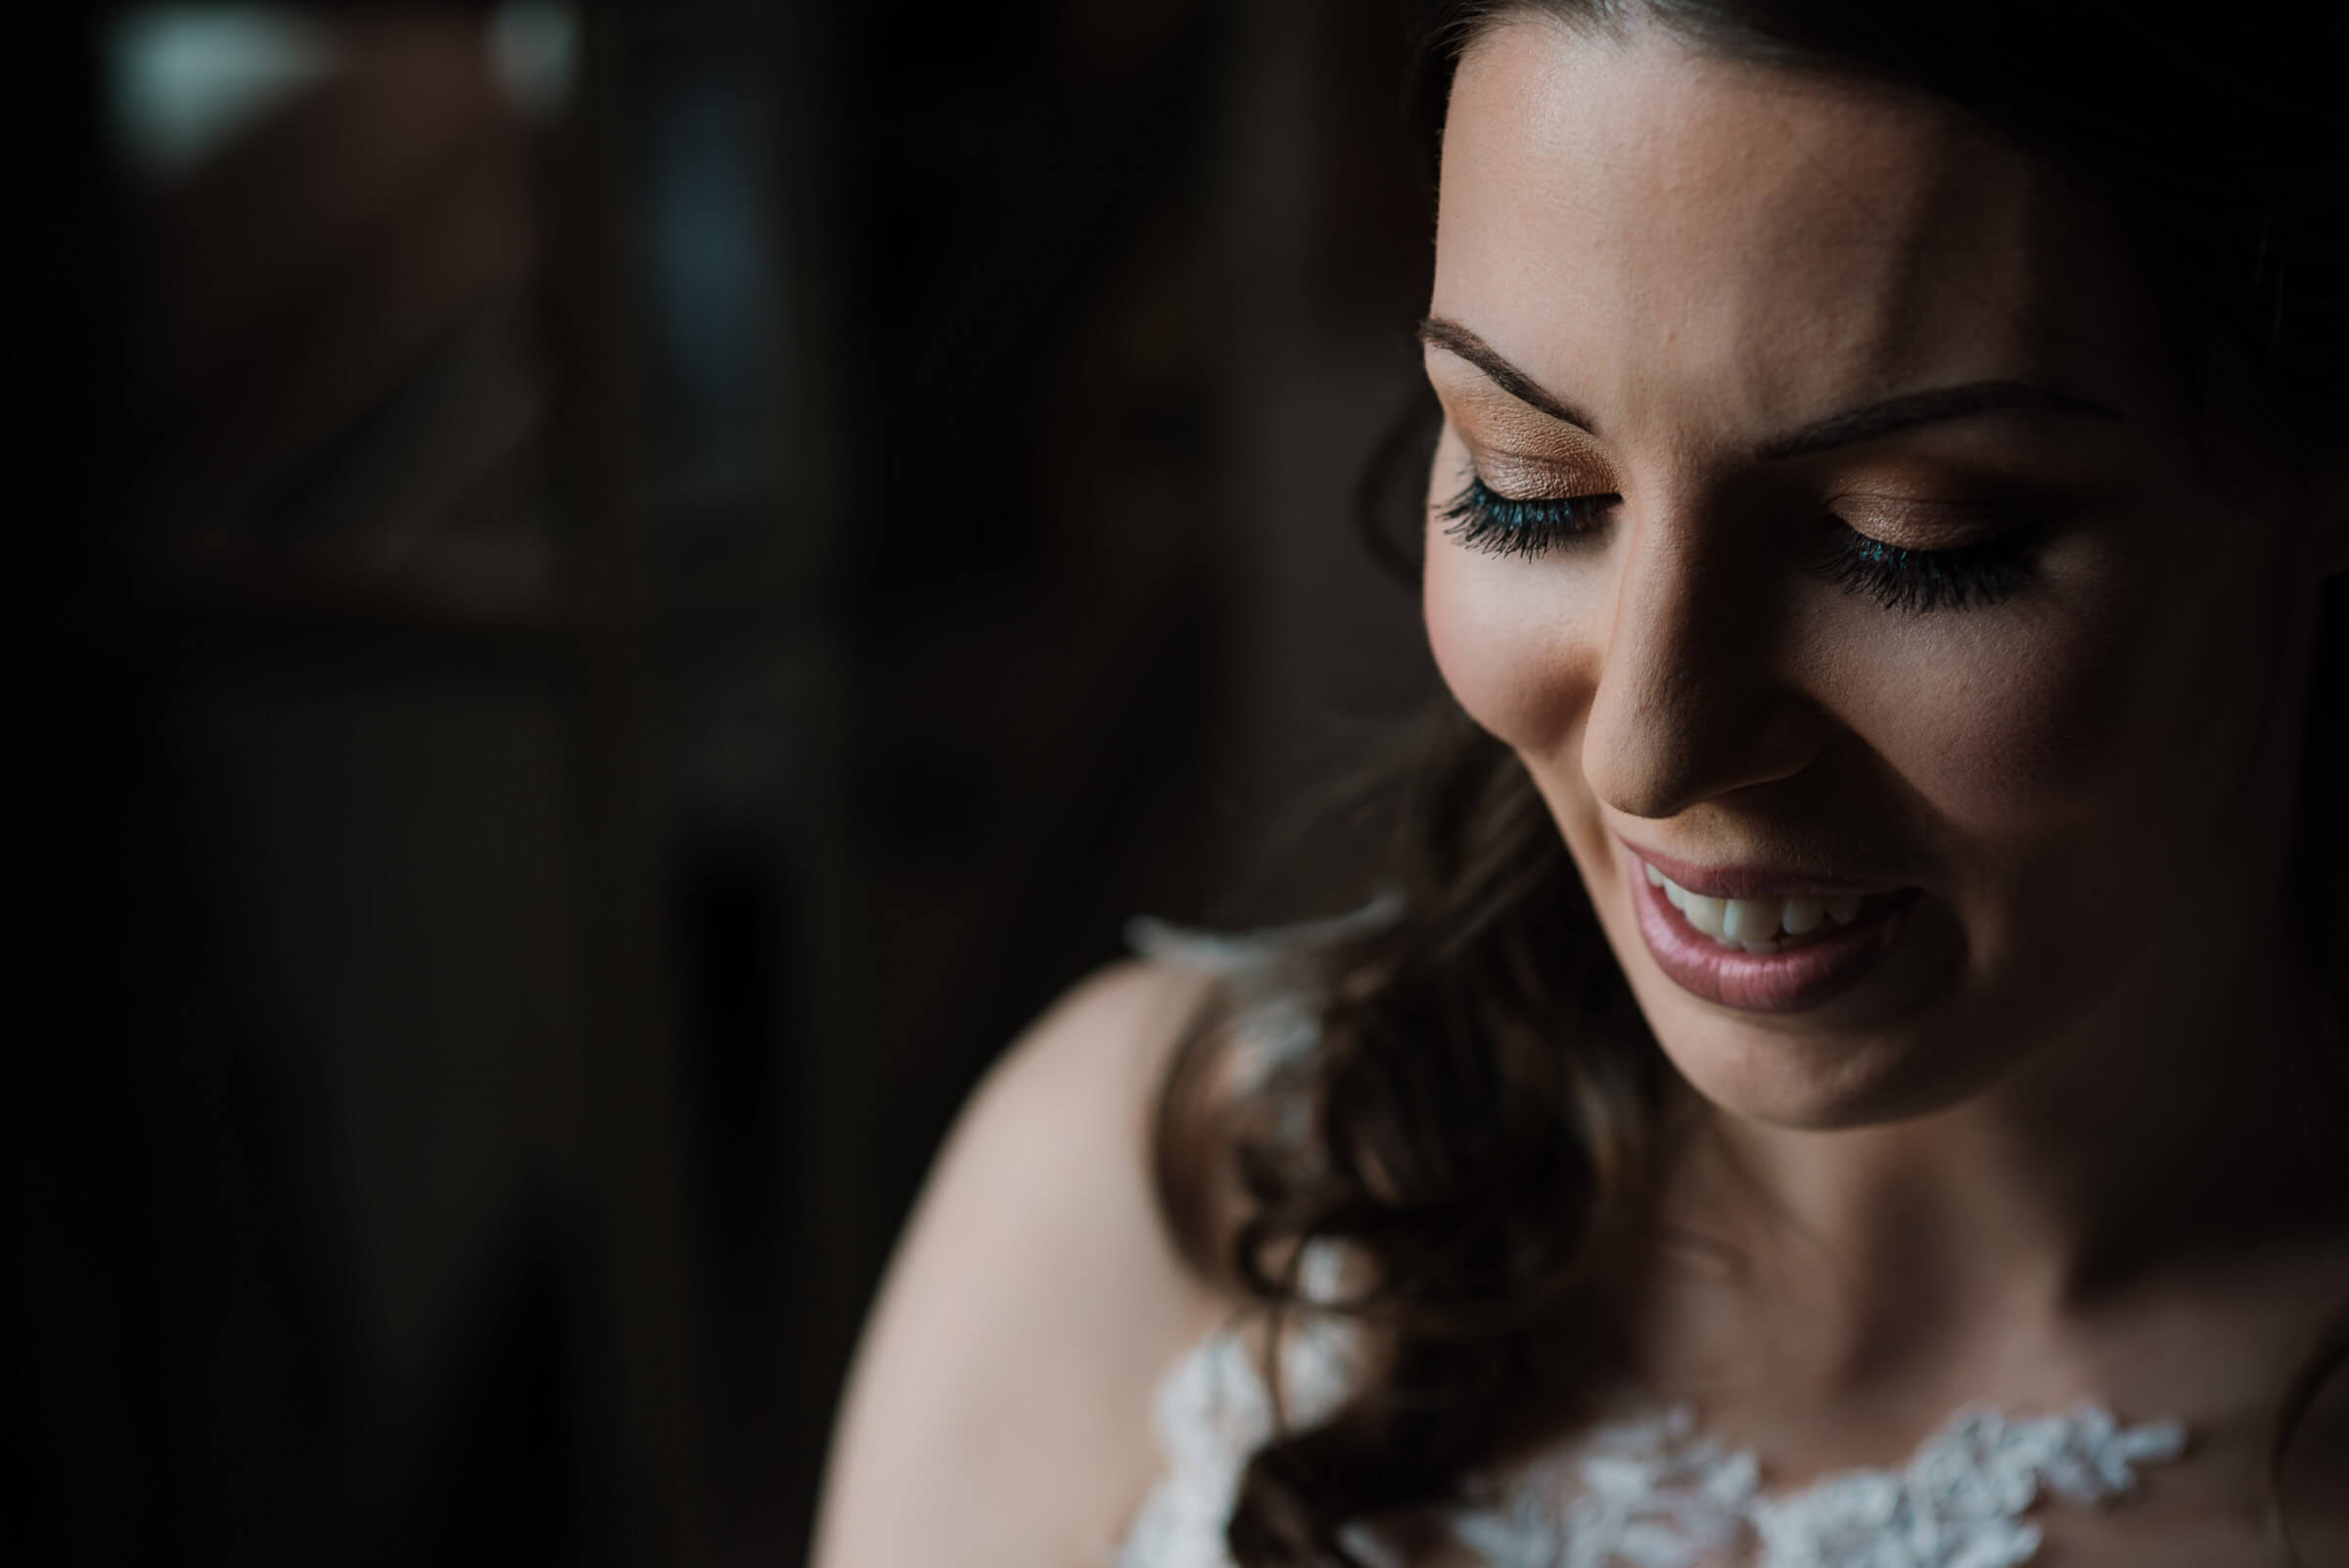 close up wedding photography of bride smiling